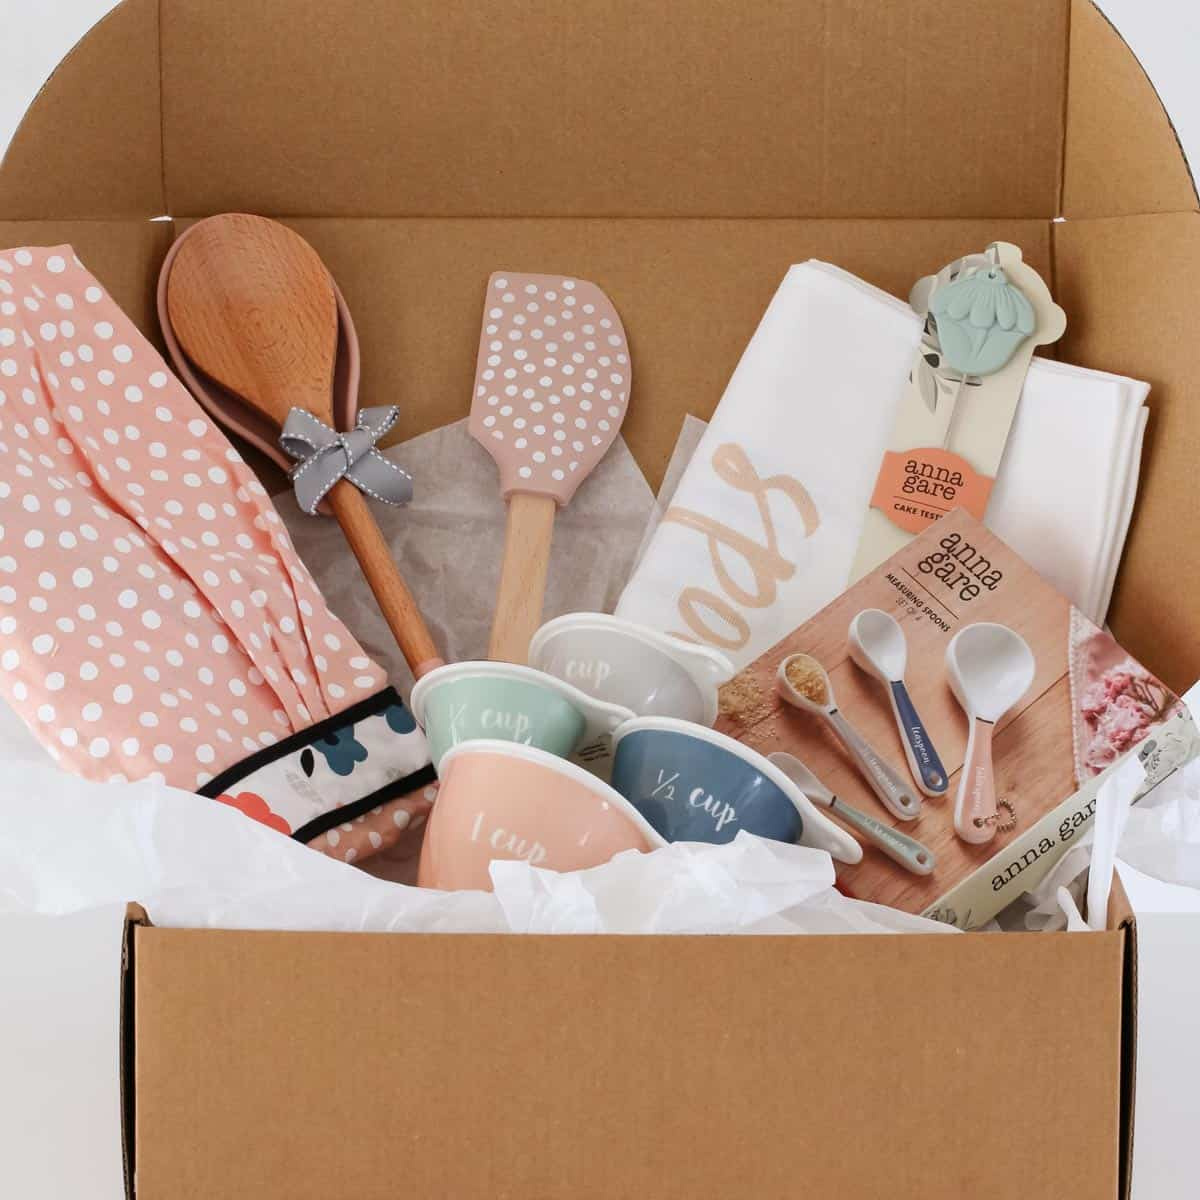 The Deluxe Baking Hamper